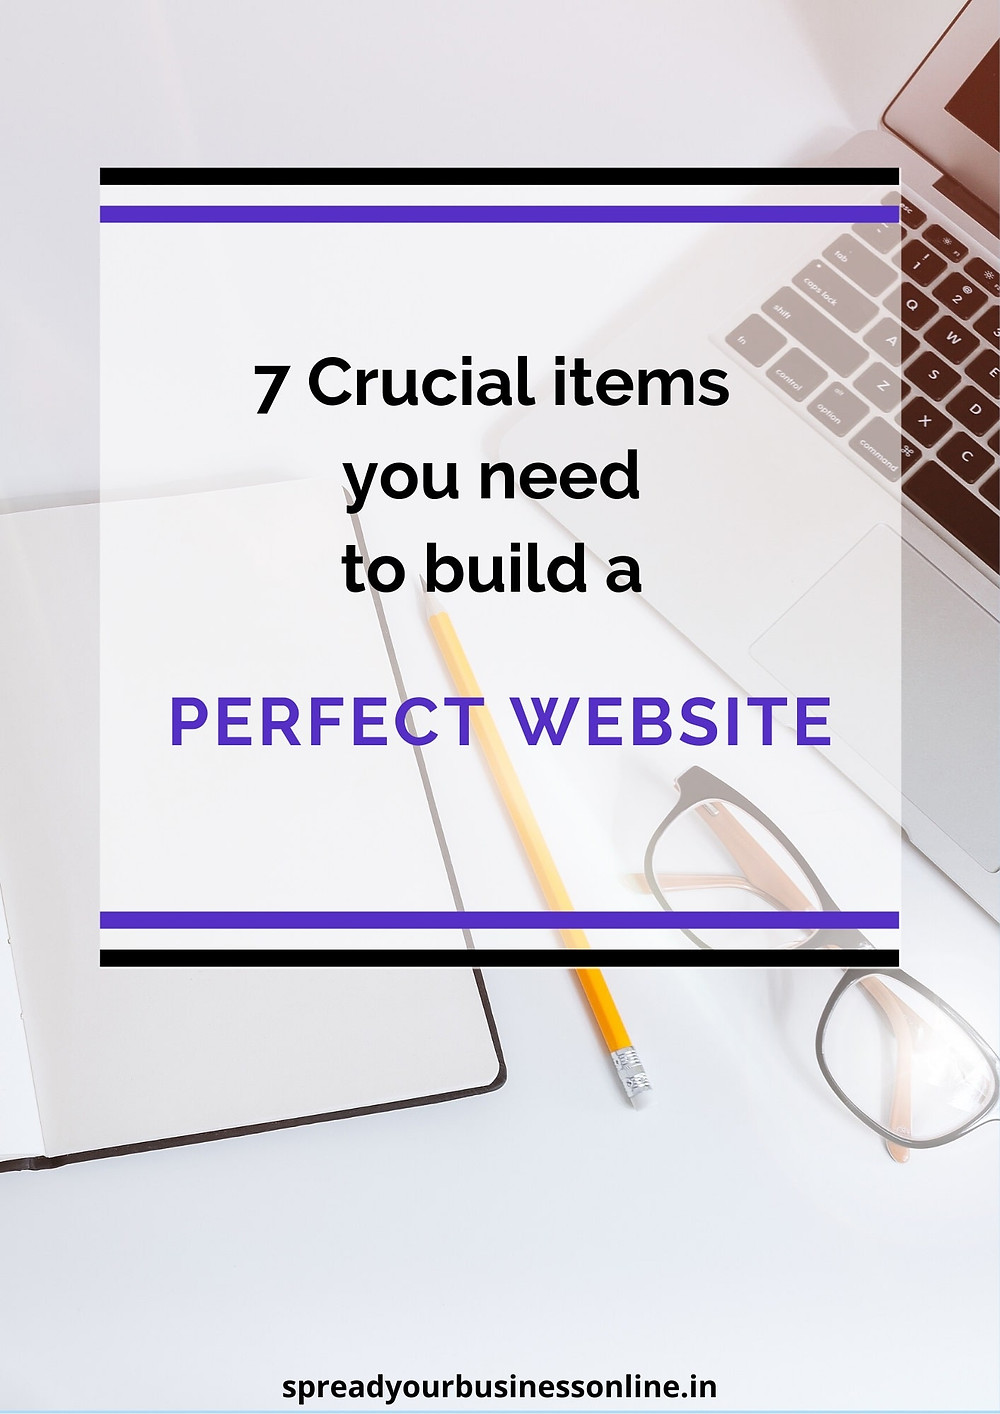 A banner shows 7 important items needs to build a perfect website.